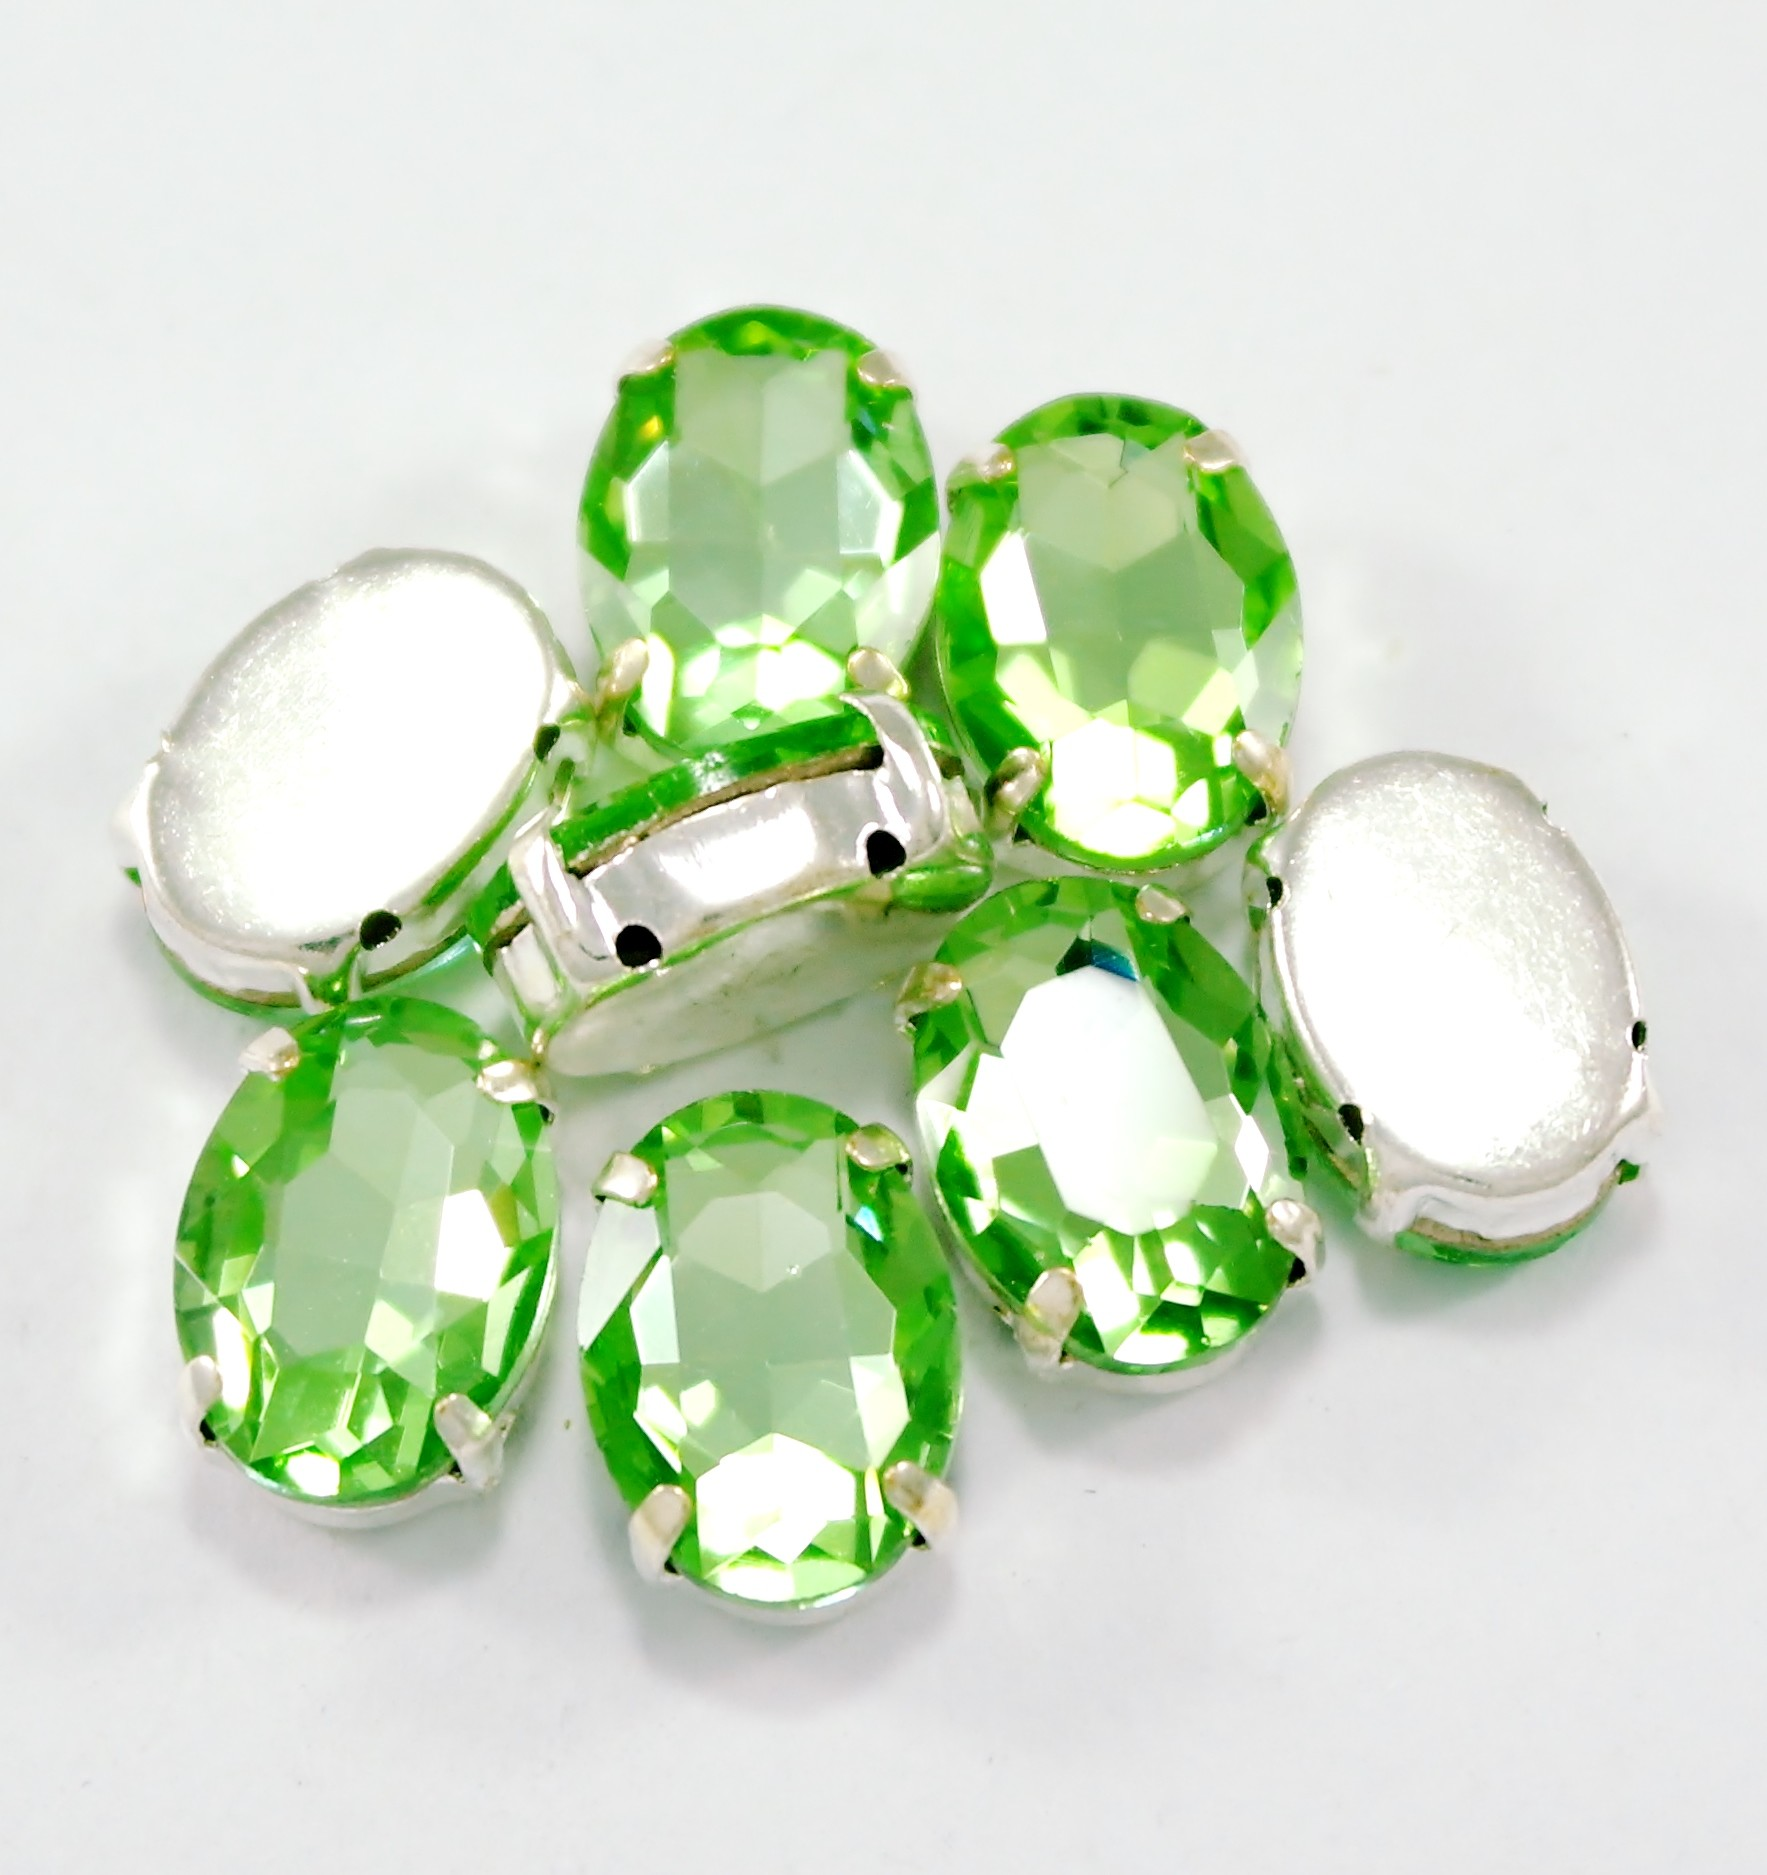 GLASS BEADS - PERIDOT OVAL (O6)